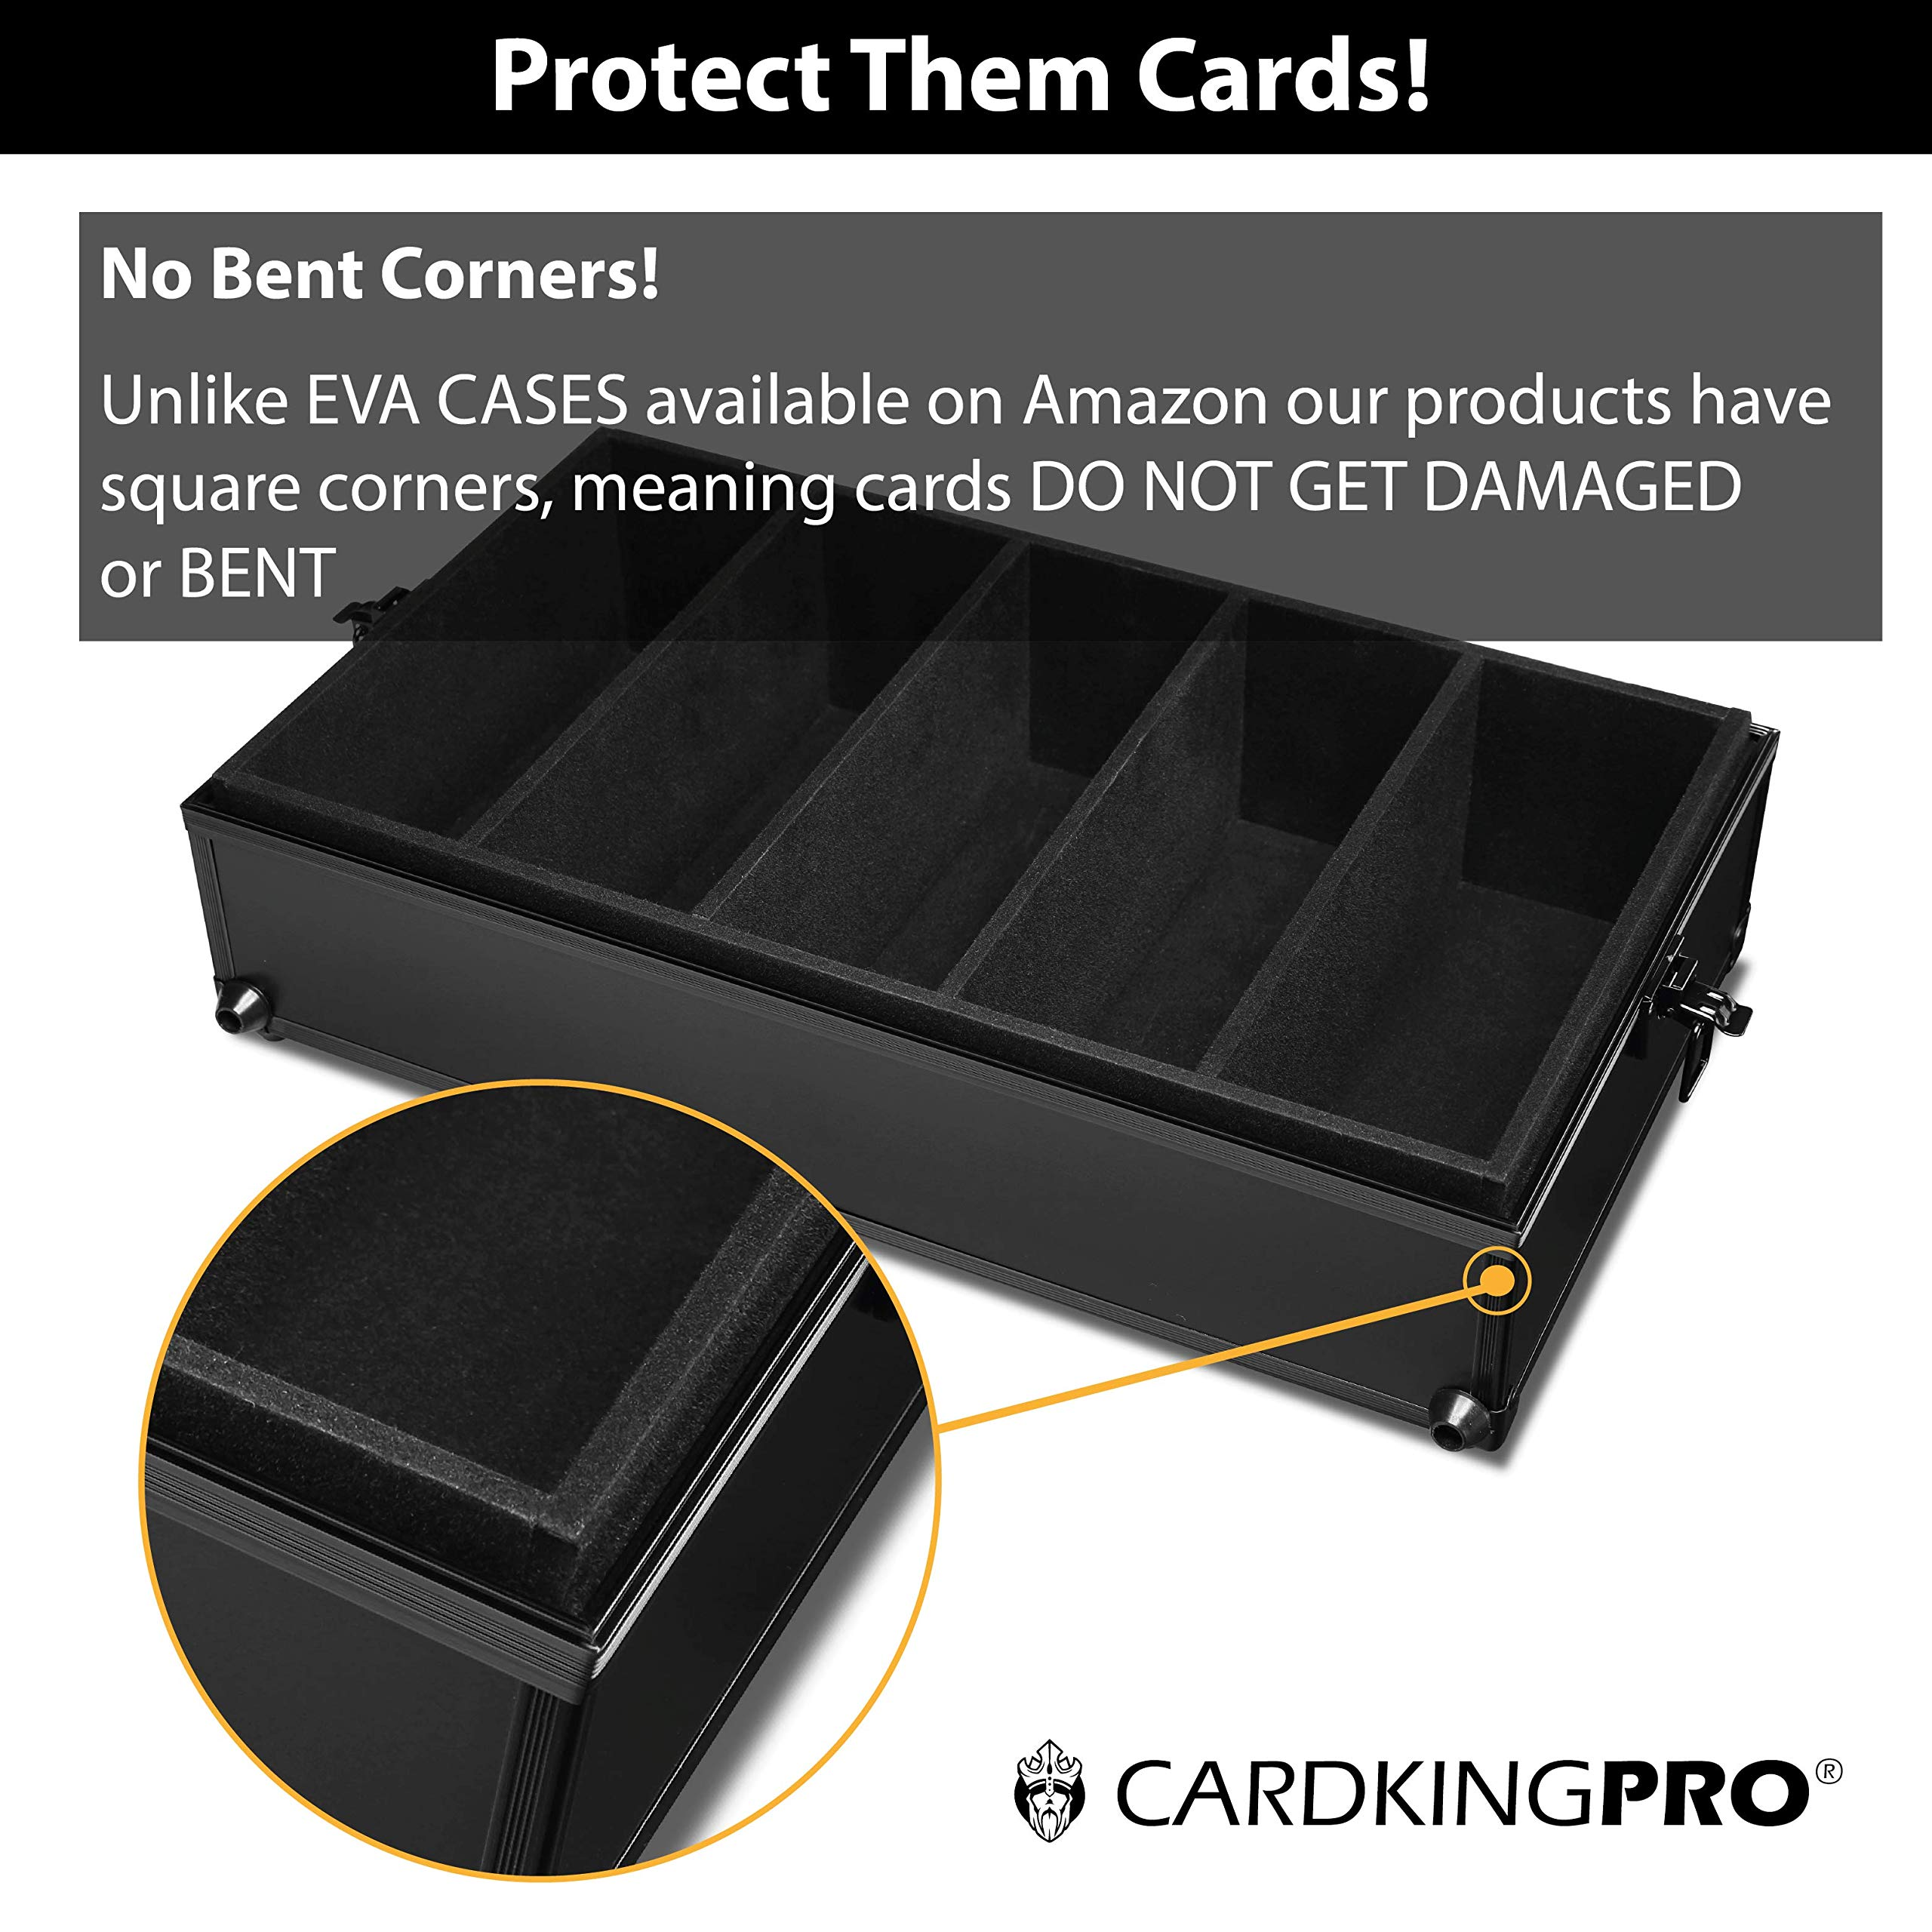 Game Card Storage Case (BBB Edition) | Case is Compatible with Magic The Gathering, MTG, All Standard Card Games (Game Not Included) | Includes 8 Dividers | Fits up to 2500 Loose Unsleeved Cards by CardKingPro (Image #6)